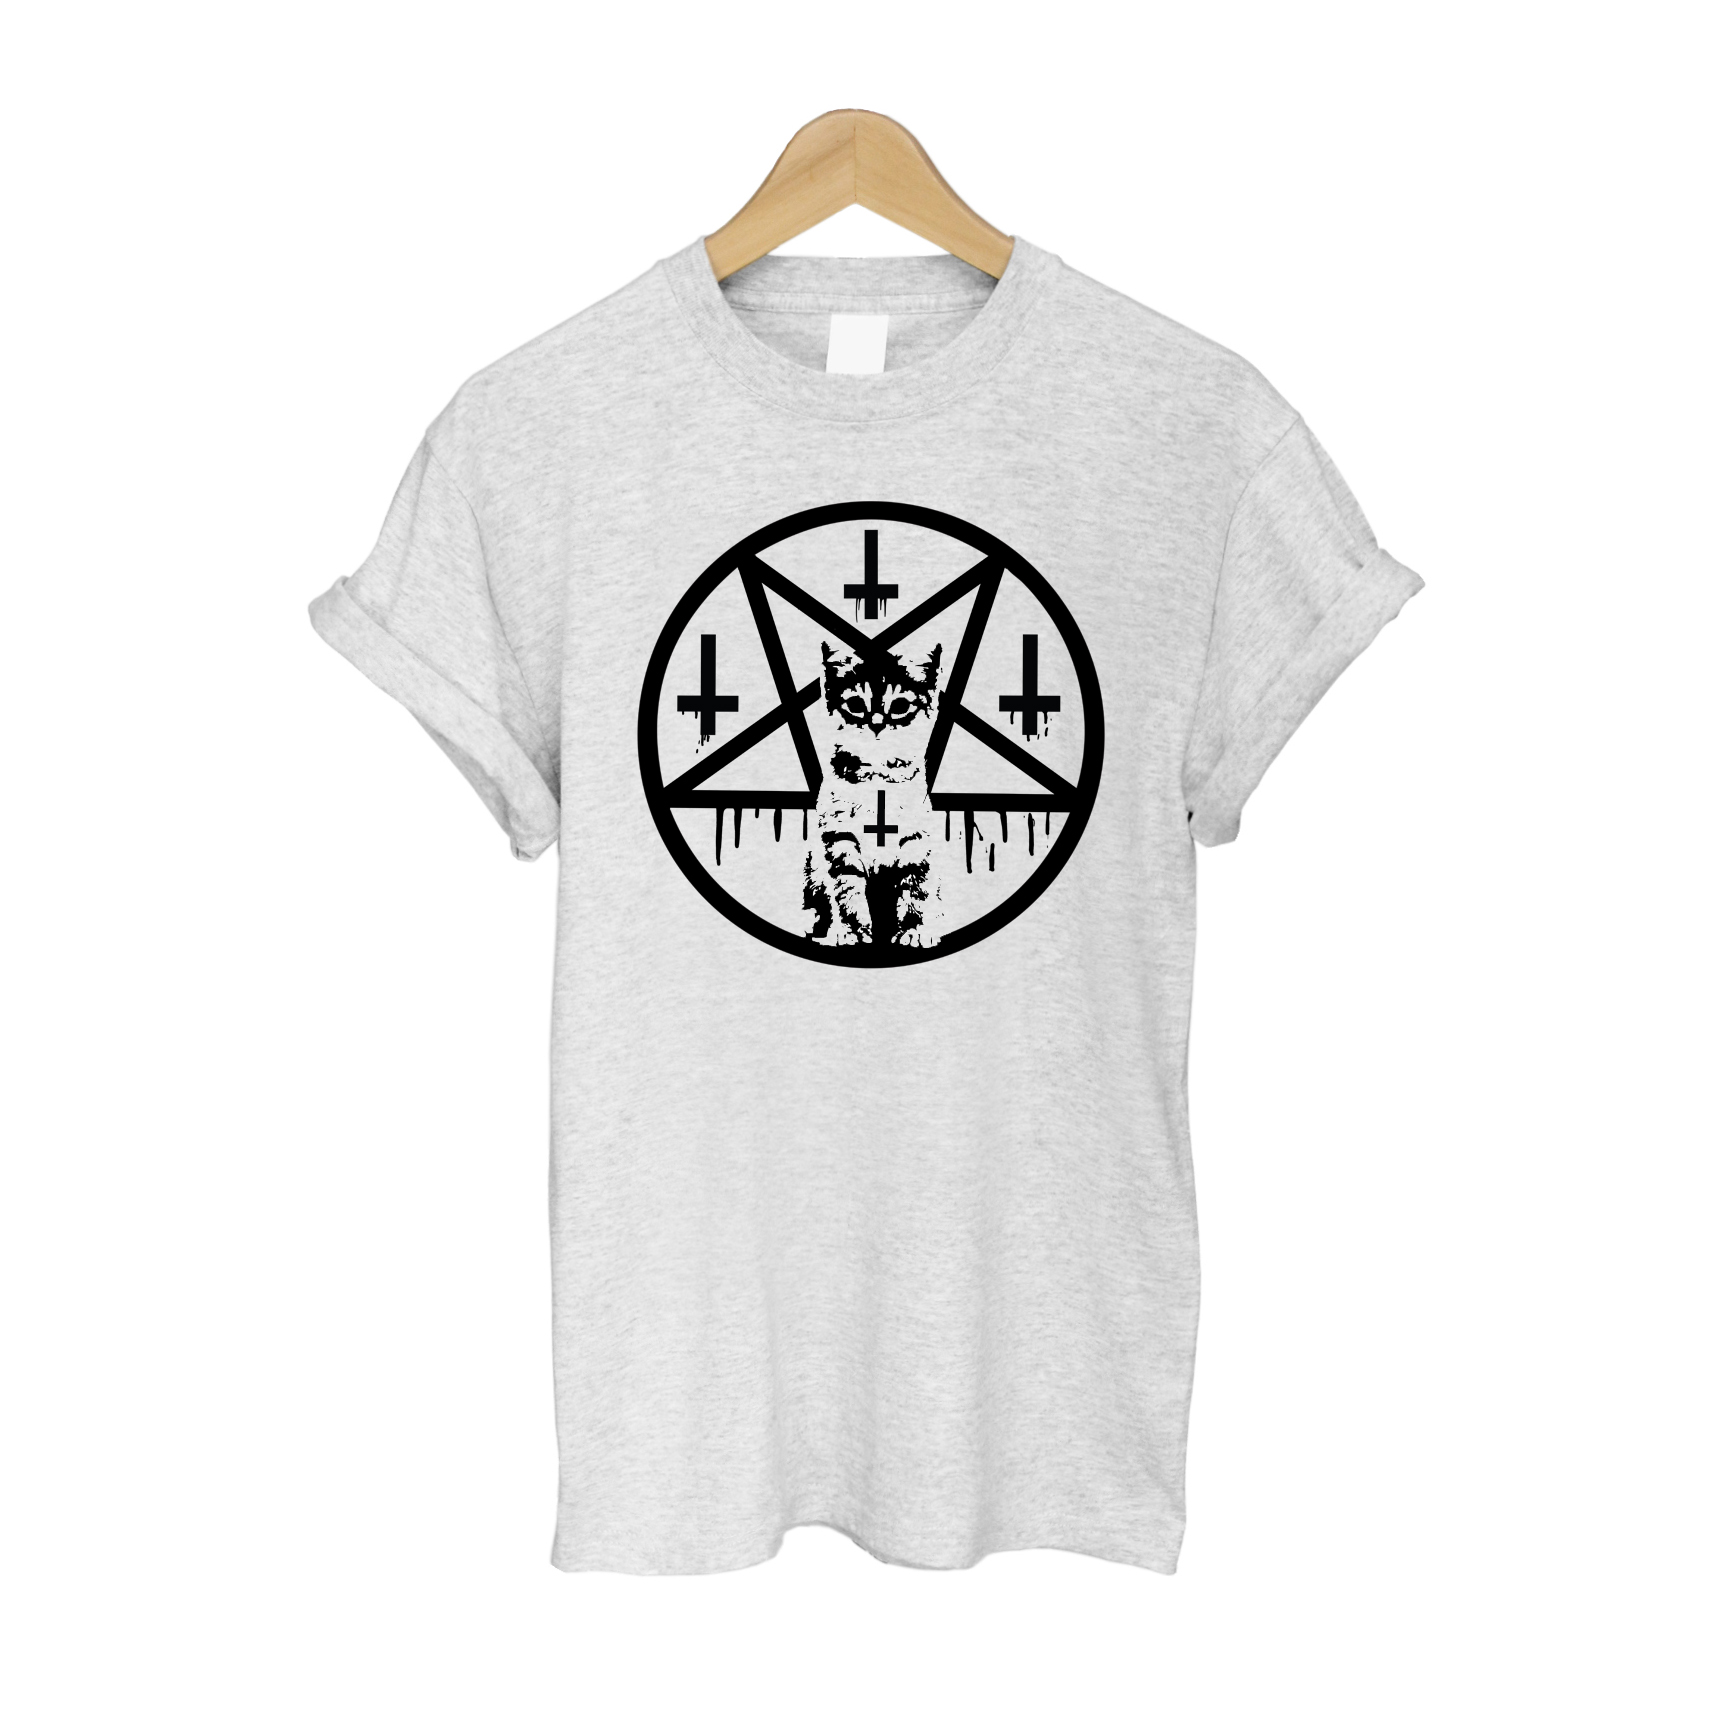 Inverted Cross & Pentacle Kitten T Shirt - Grey £11   Free UK Delivery   10% OFF